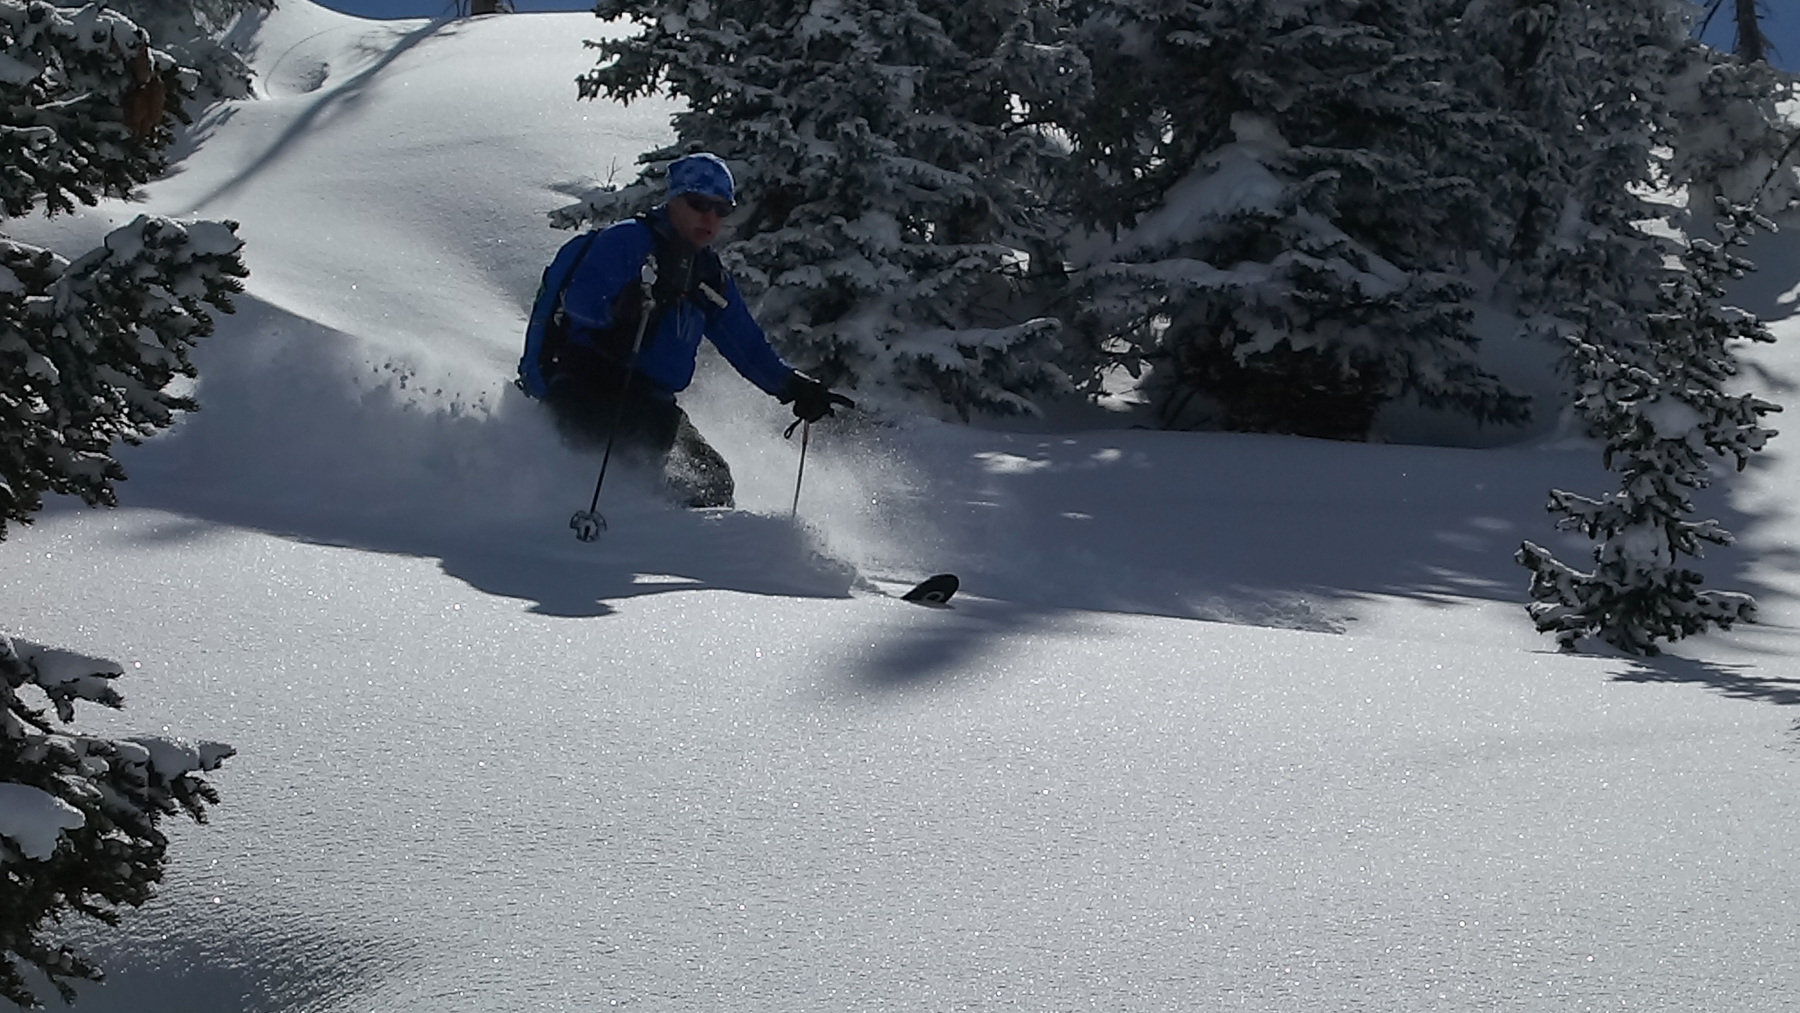 Fresh powder in the Teton backcountry